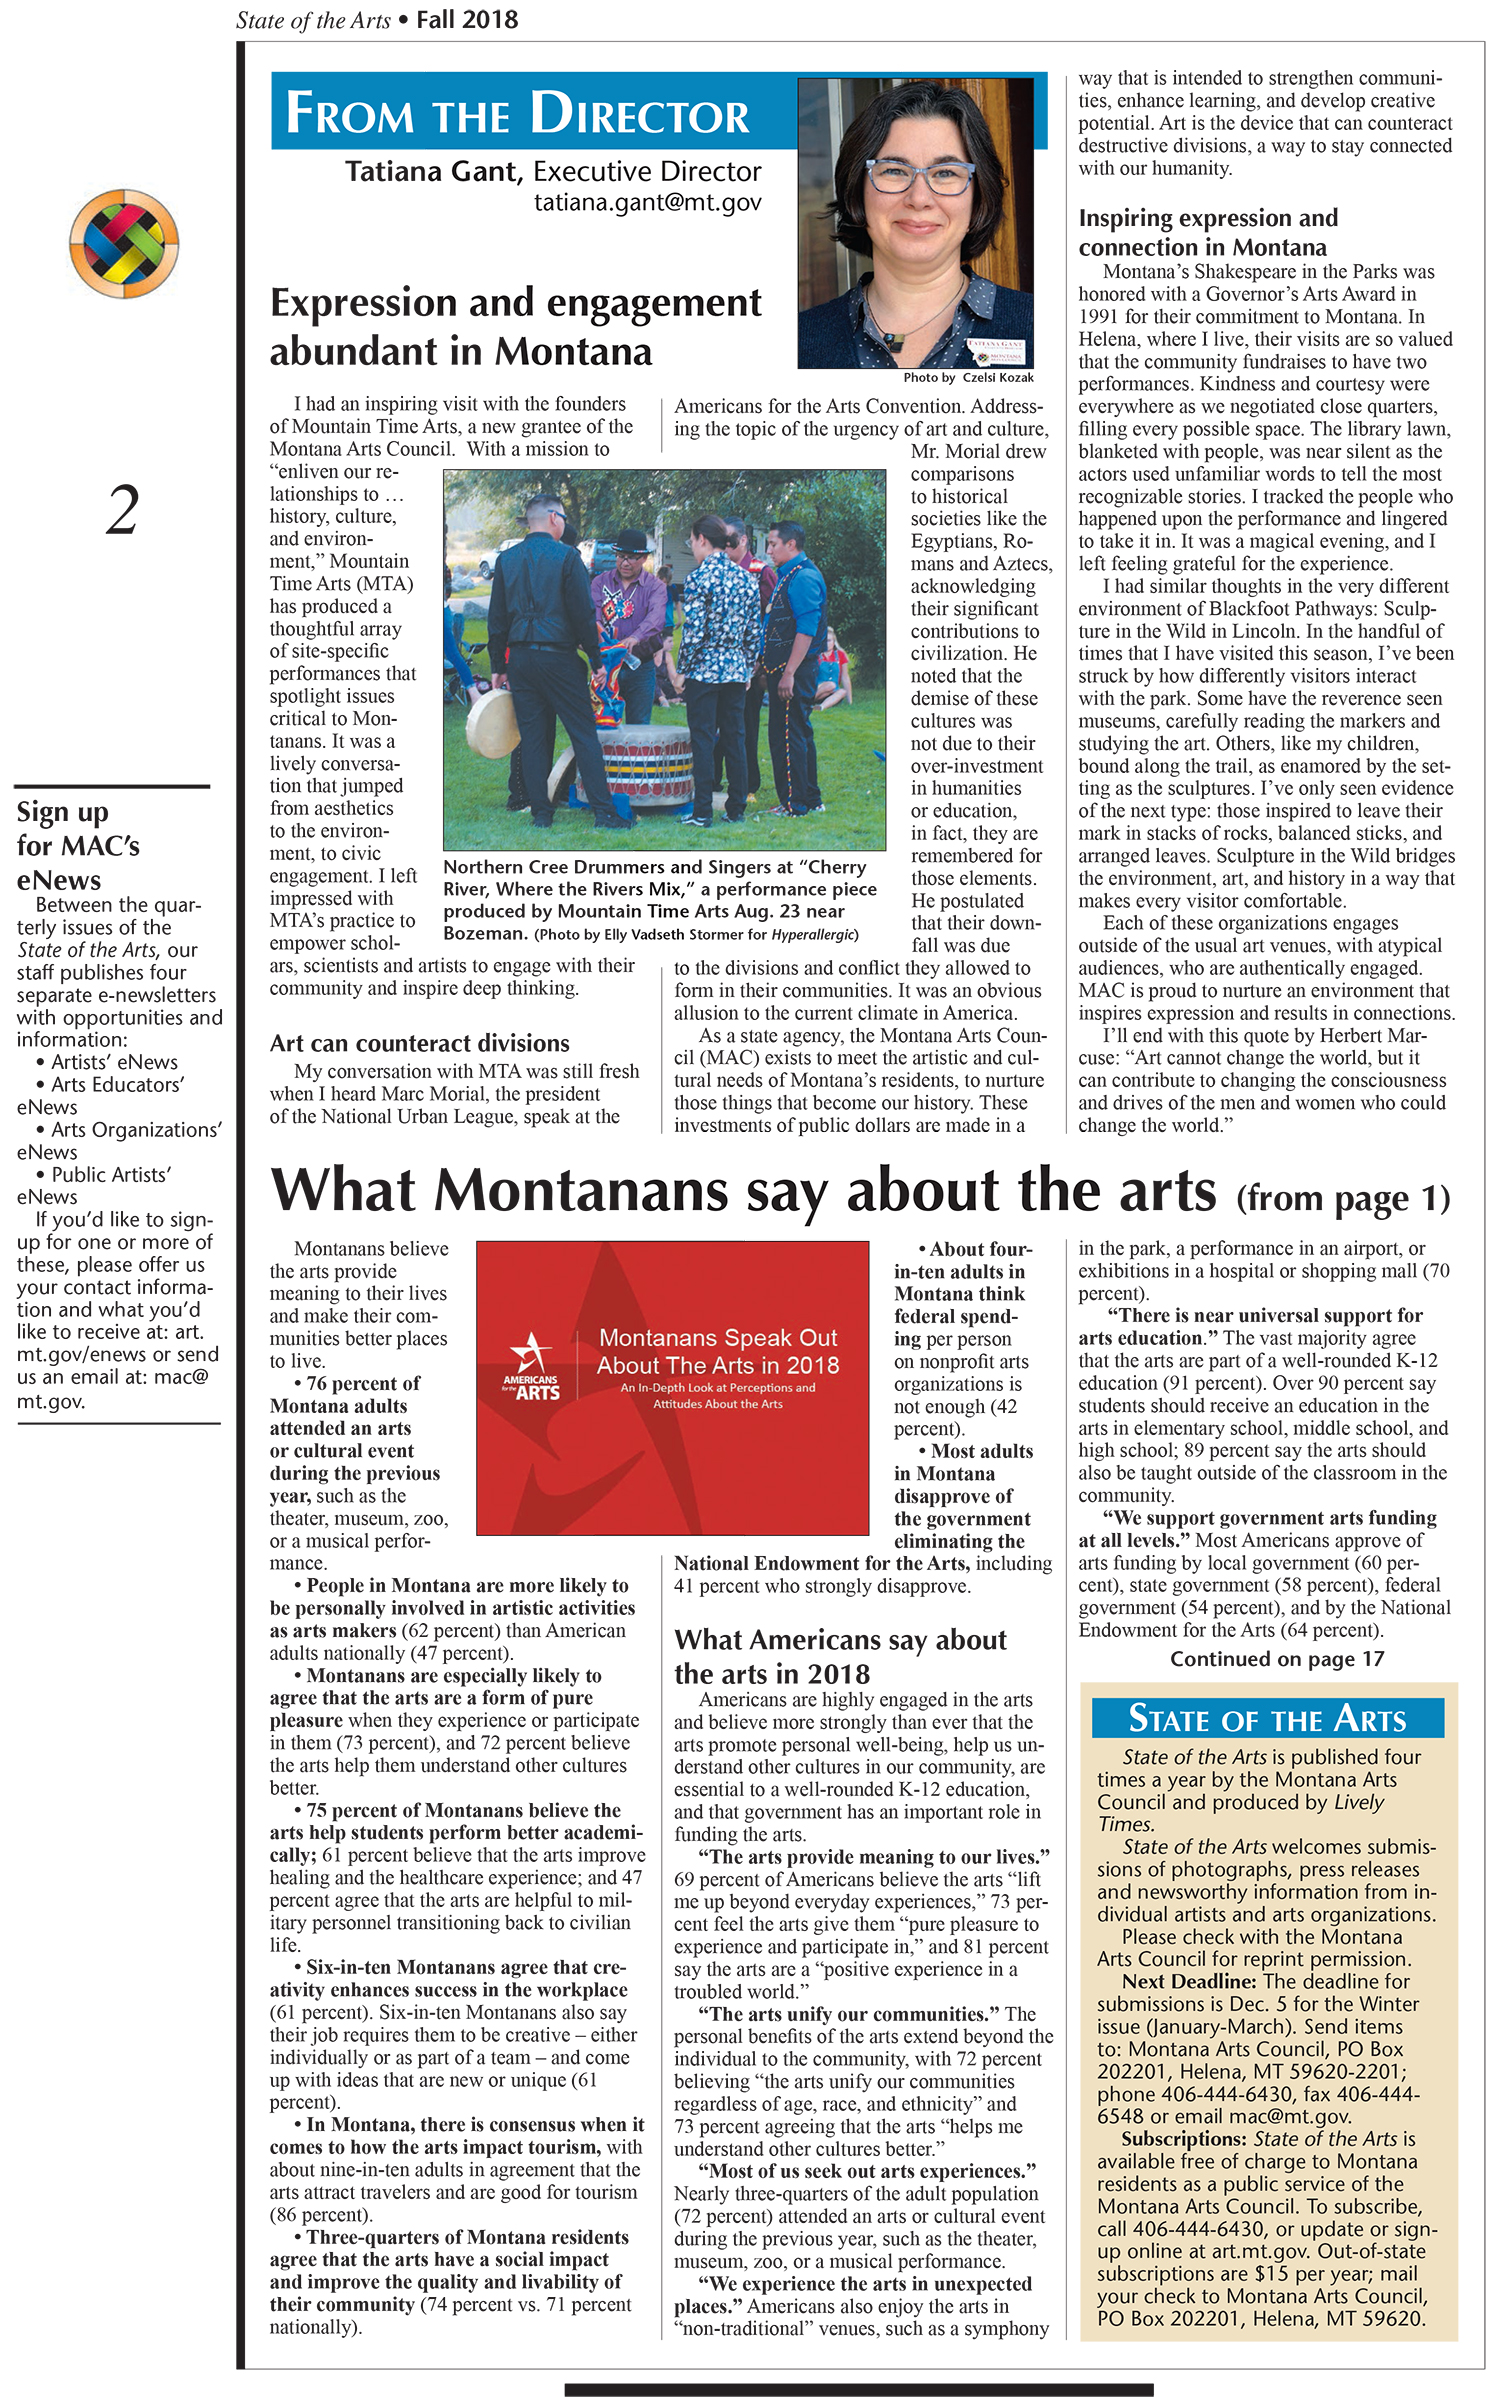 Montana Arts Council, State of the Arts, Fall 2018